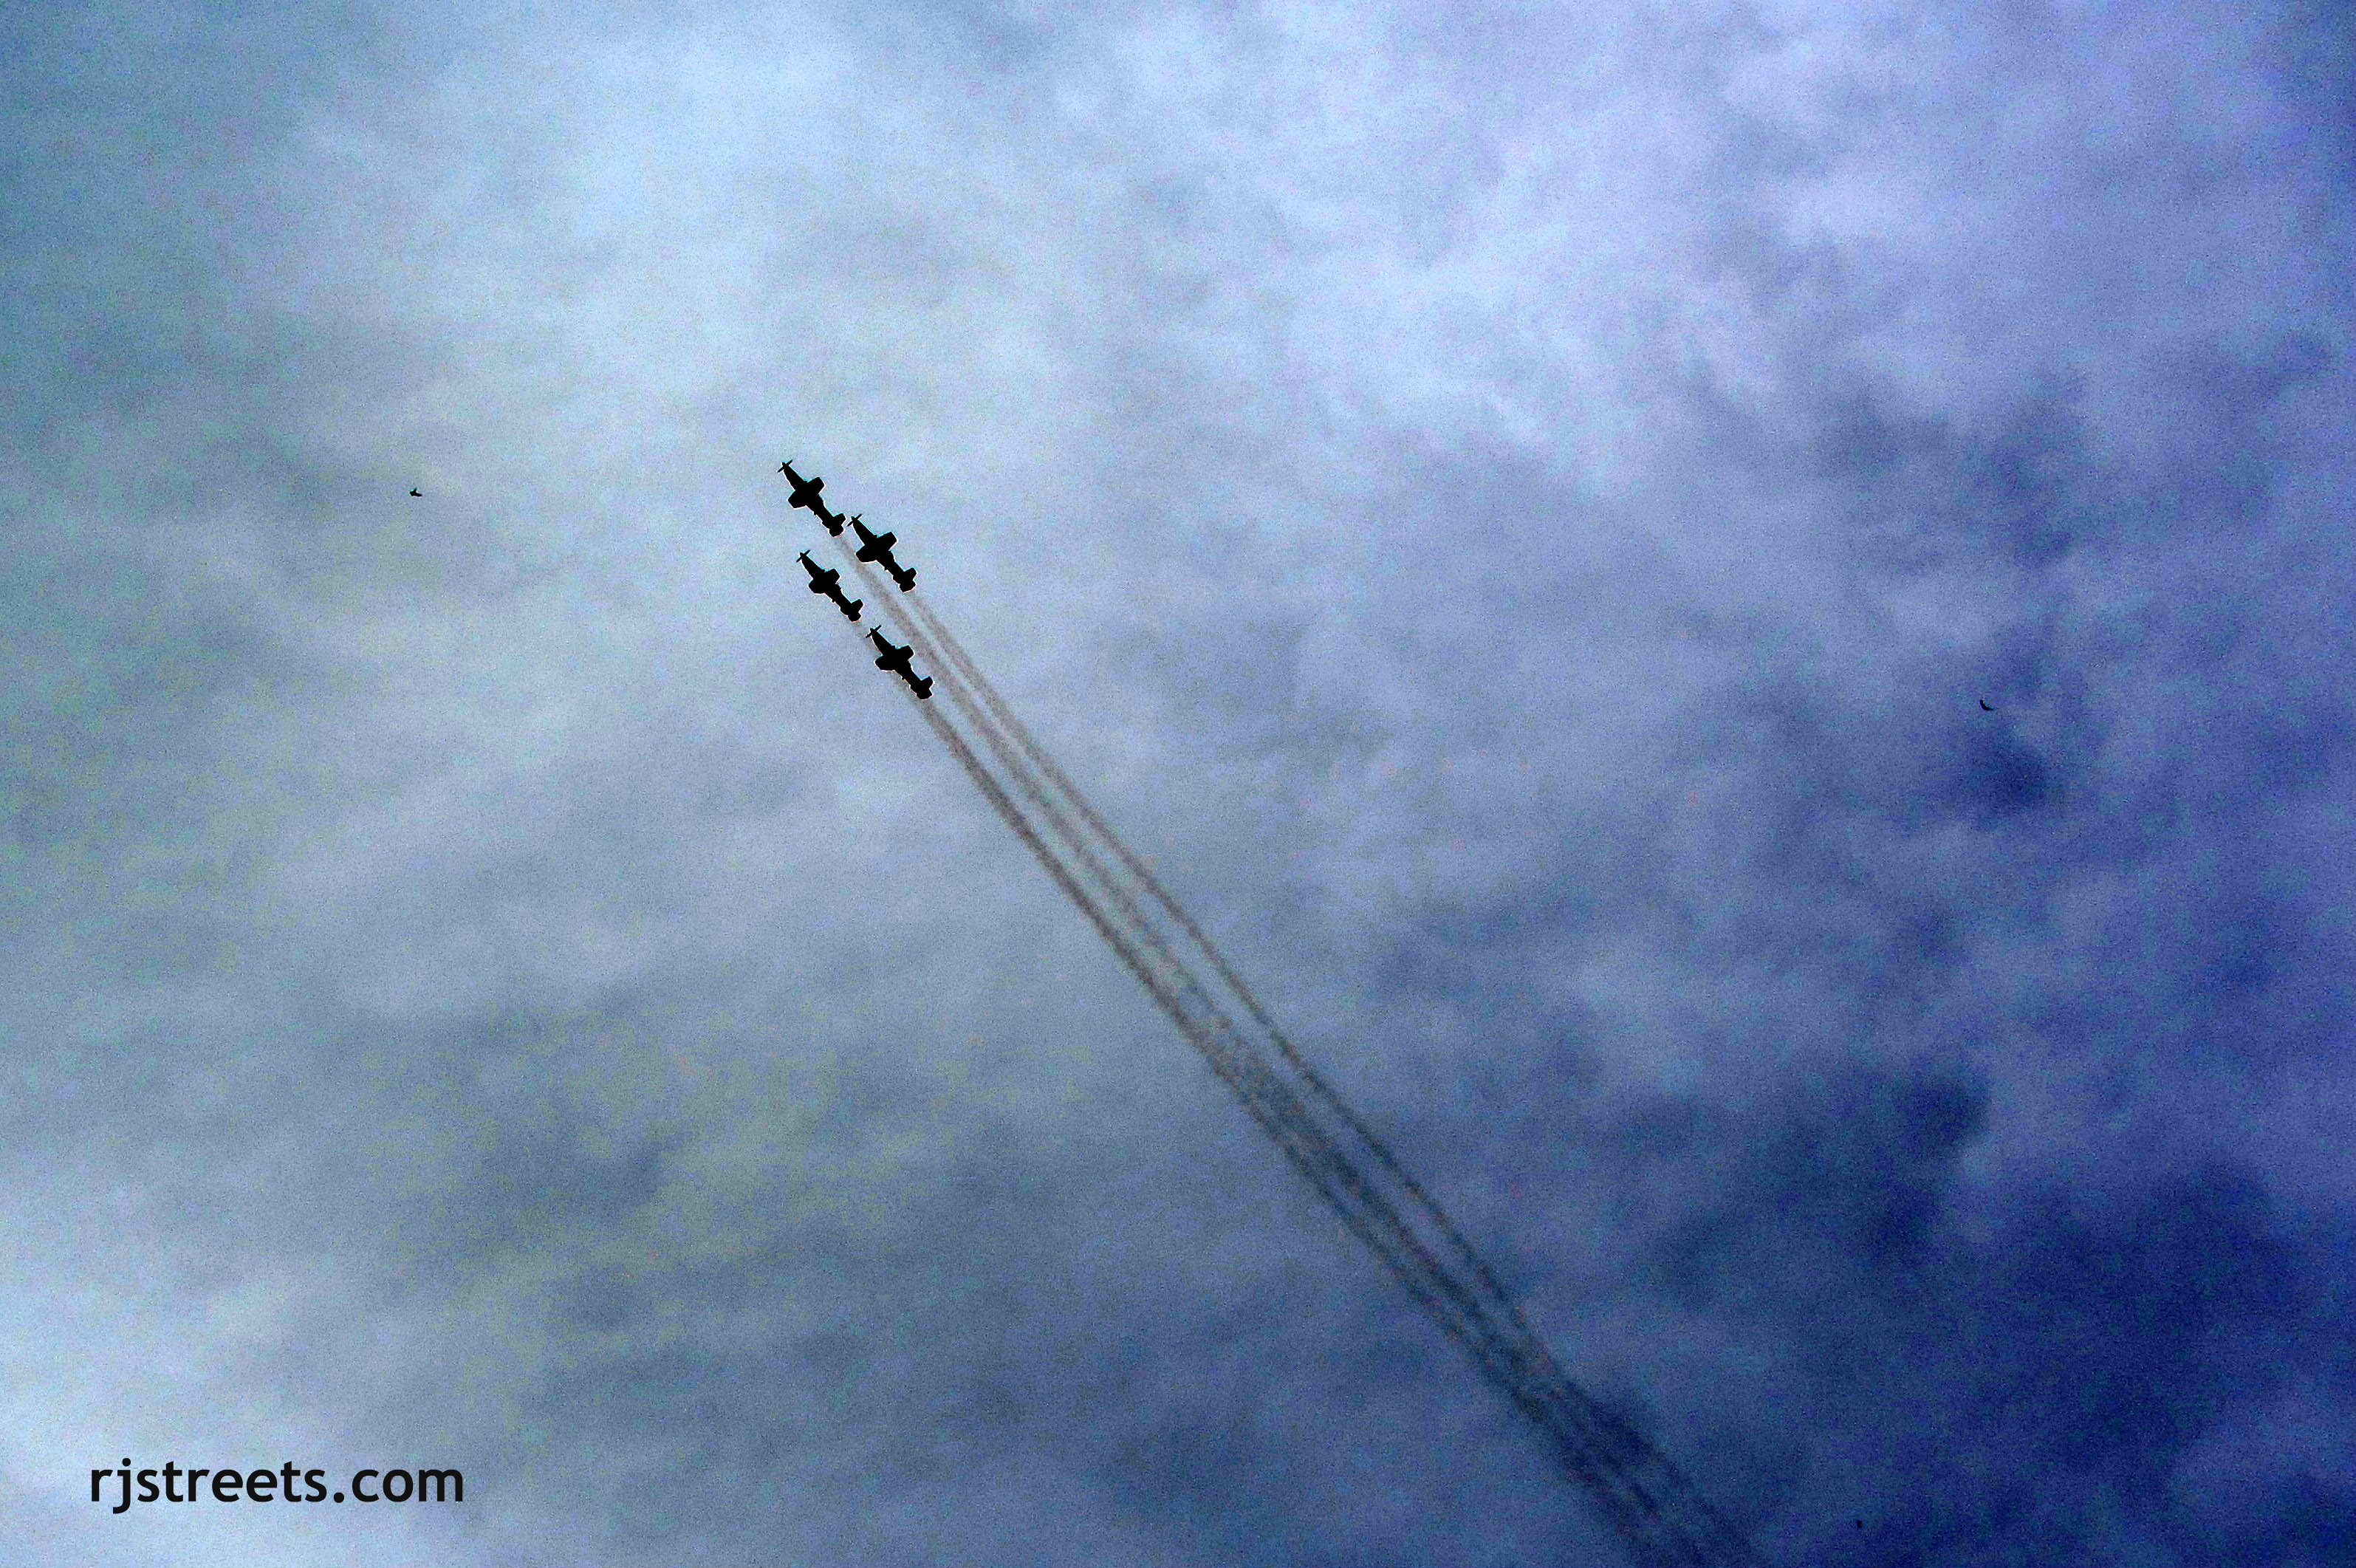 image planes in formation, photo air show